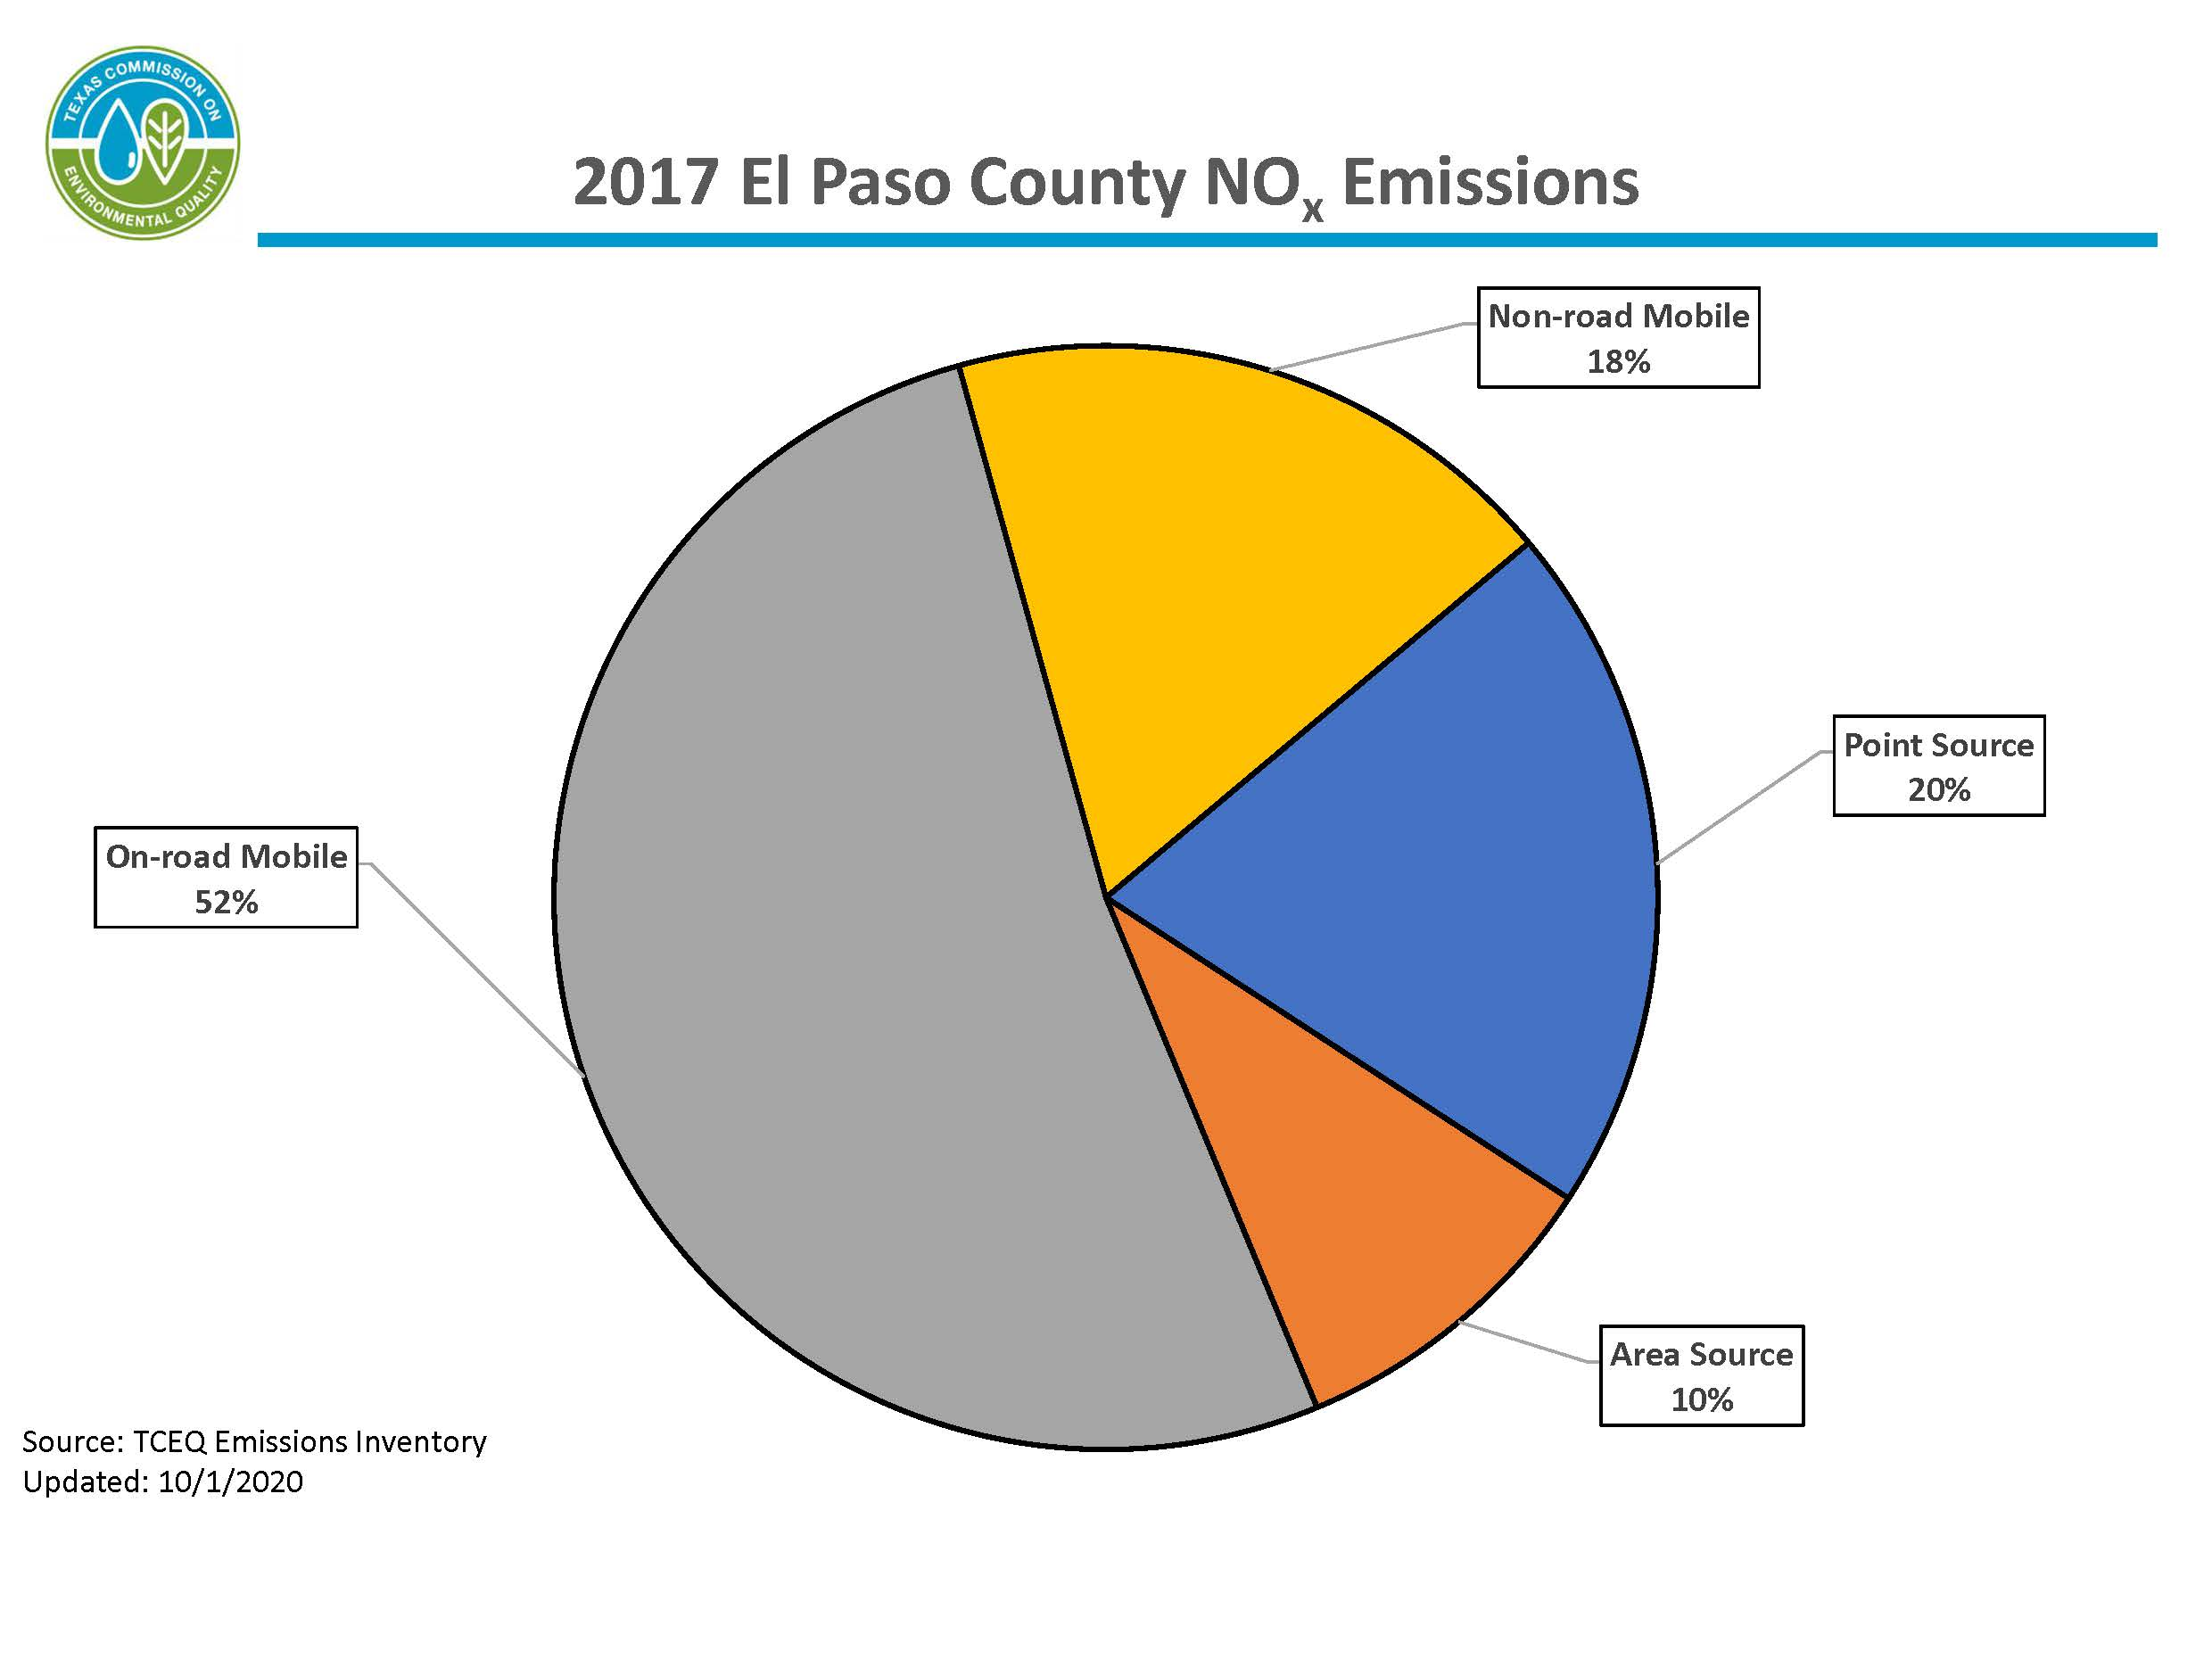 This chart represents calendar year 2017 nitrogen oxide emissions for El Paso County. 71 percent of emissions are from mobile sources, 20 percent of emissions are from point sources, and 9 percent of emissions are from area sources.